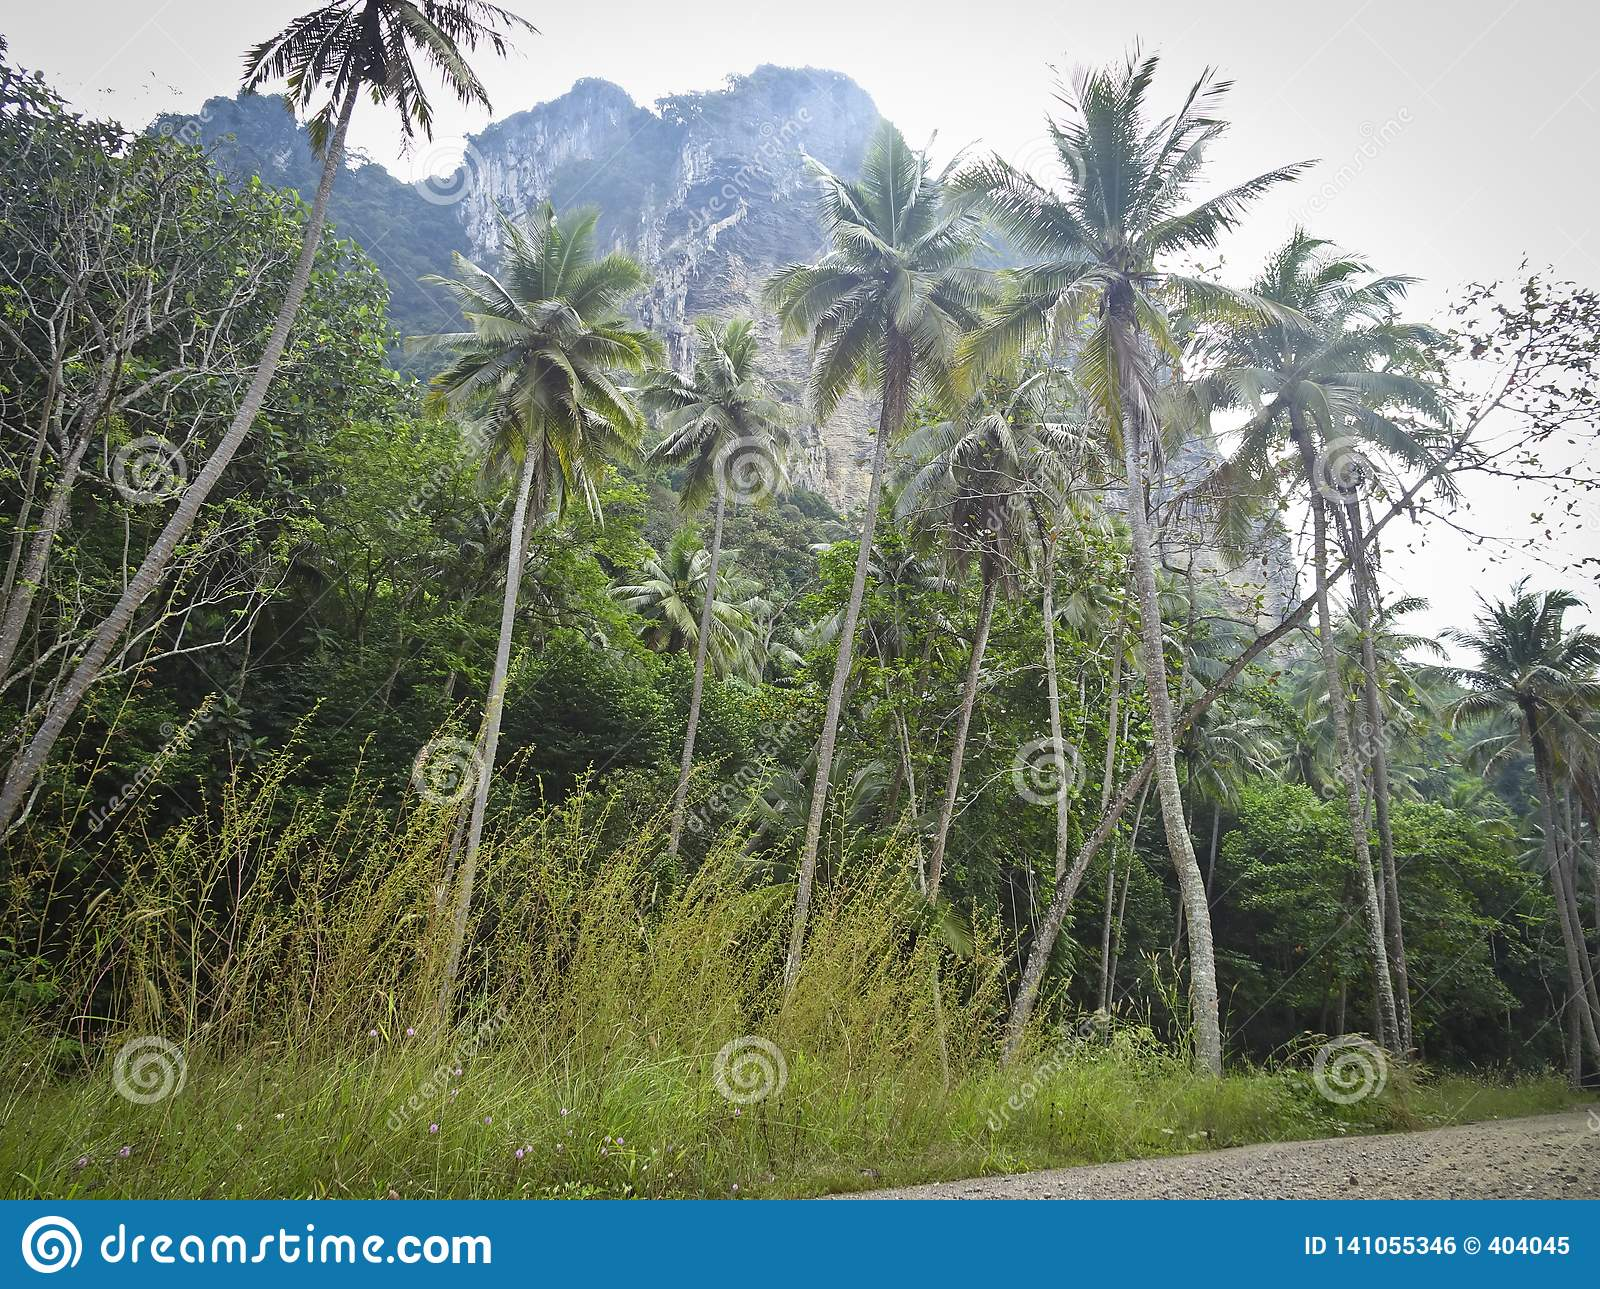 Jungle with coconut trees under a high rocky mountain